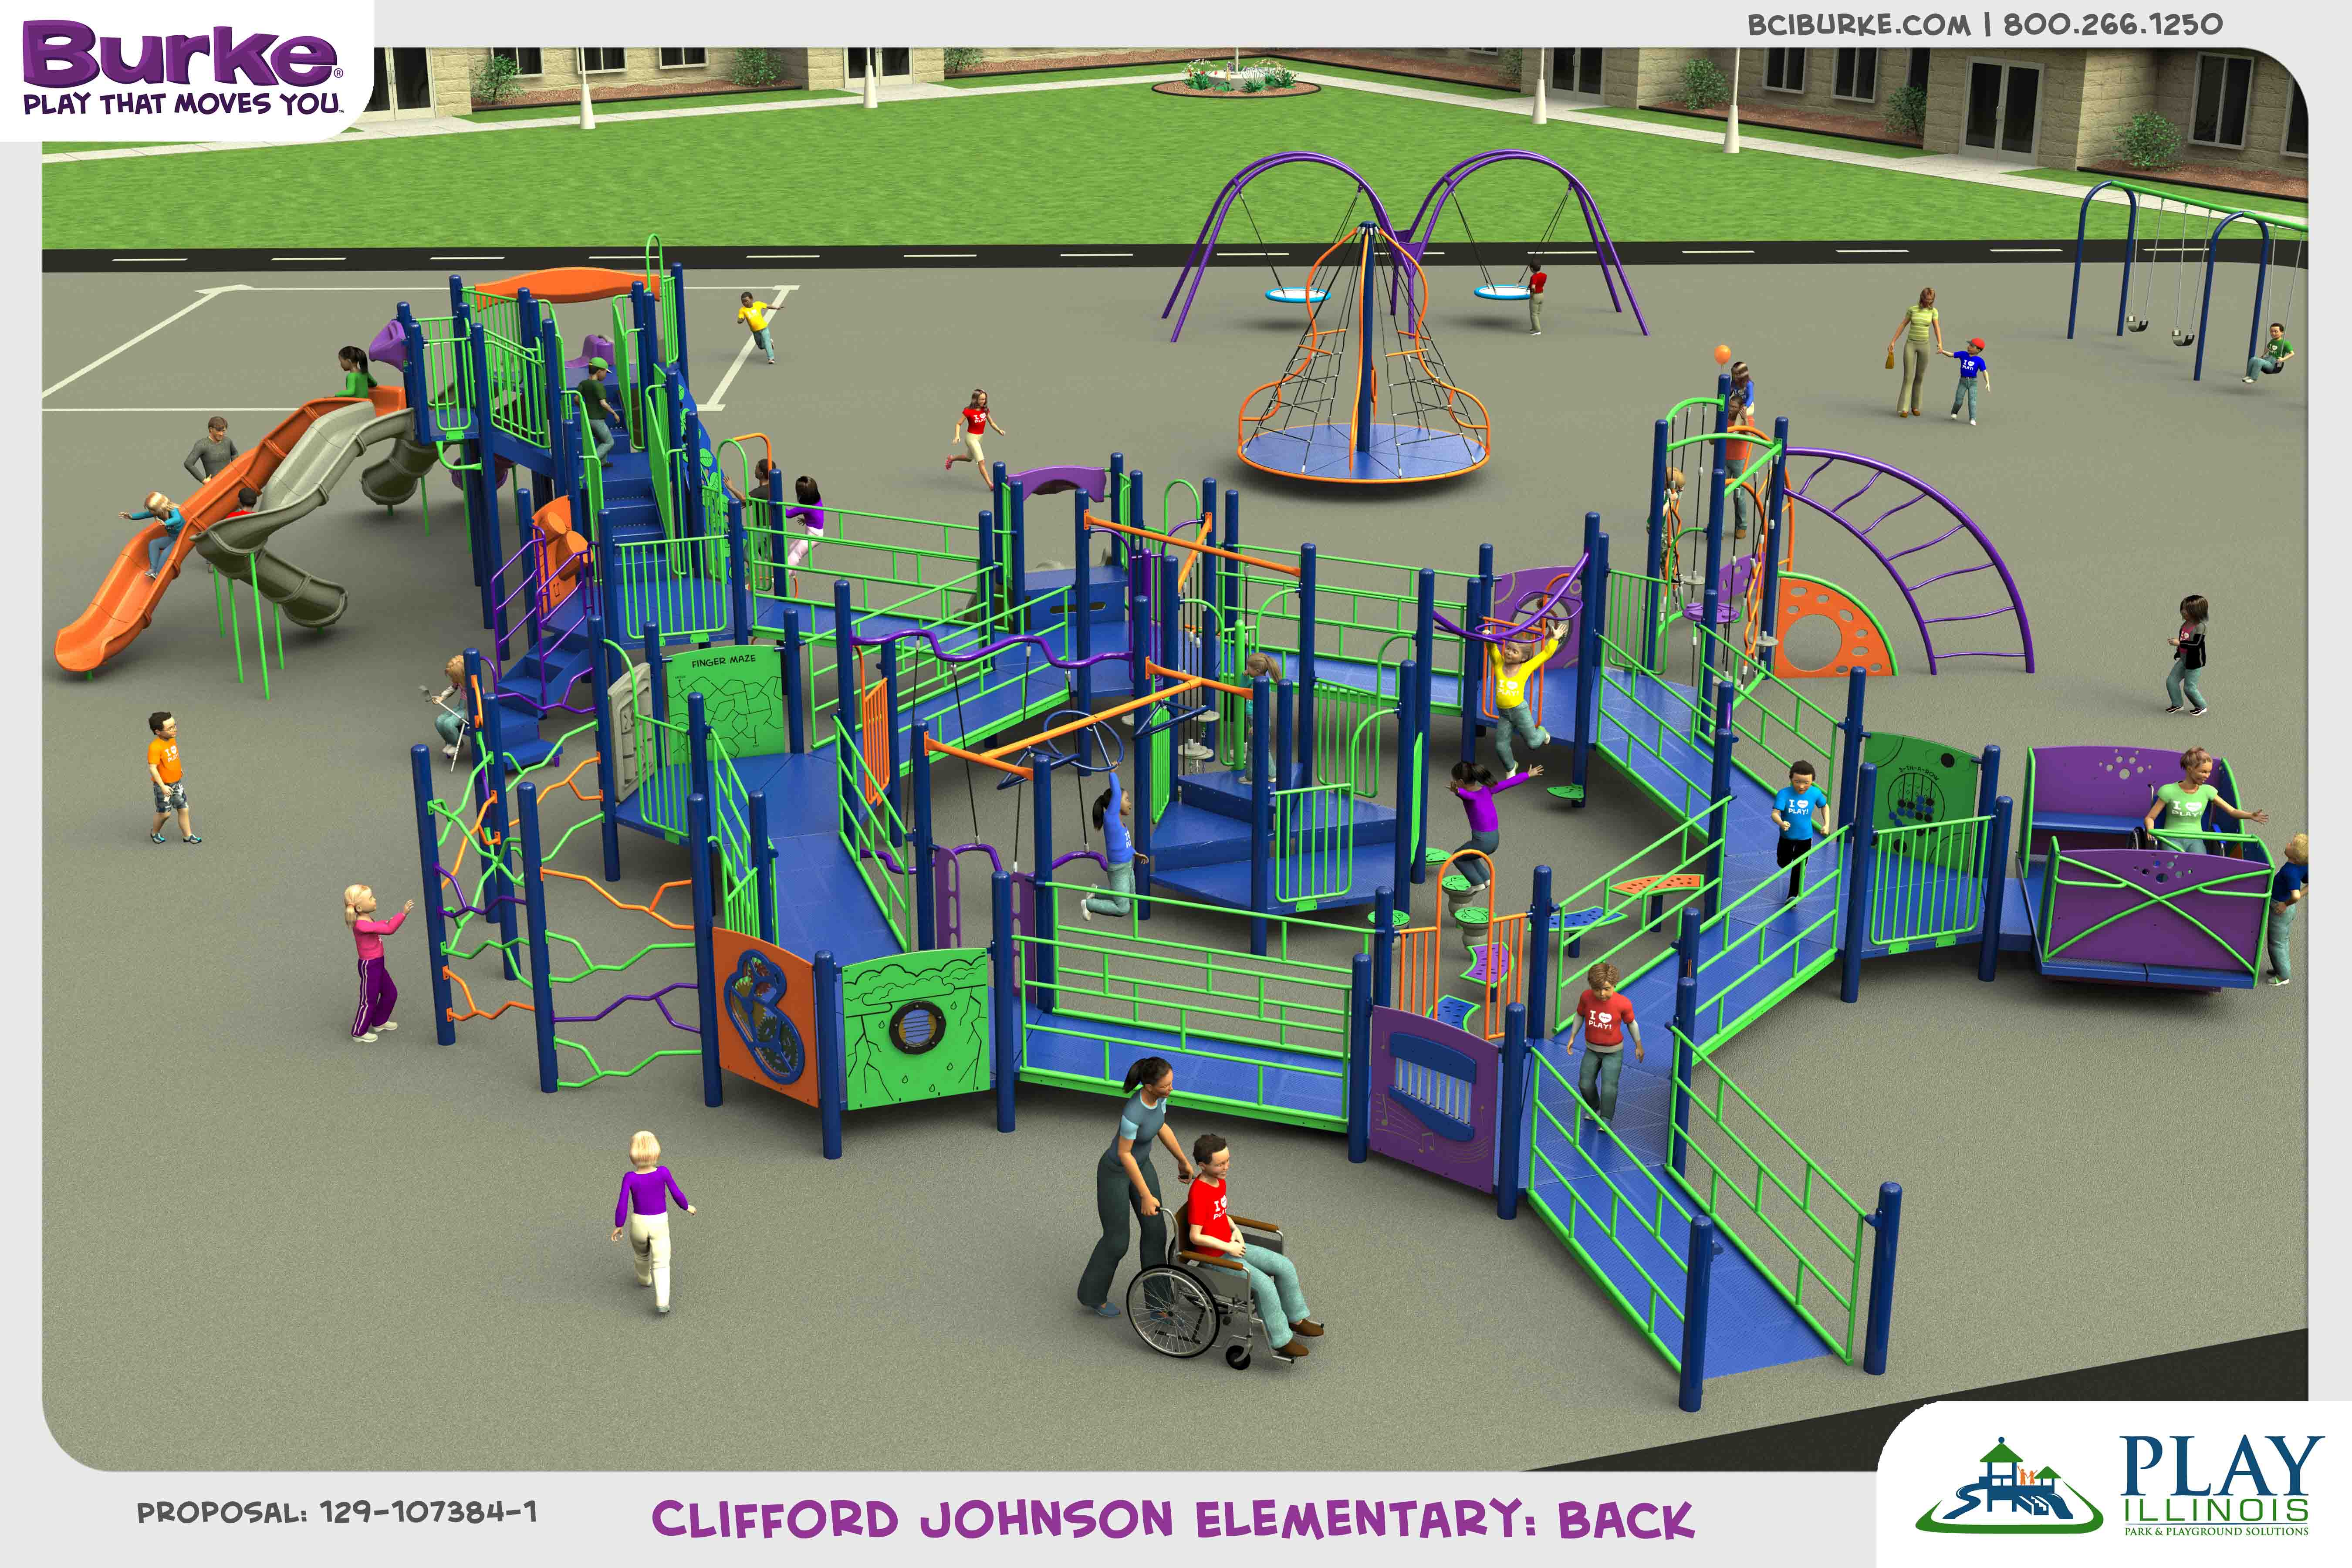 129-107384-1C-copy_MC_CliffordJohnson dream build play experience accessible playgrounds